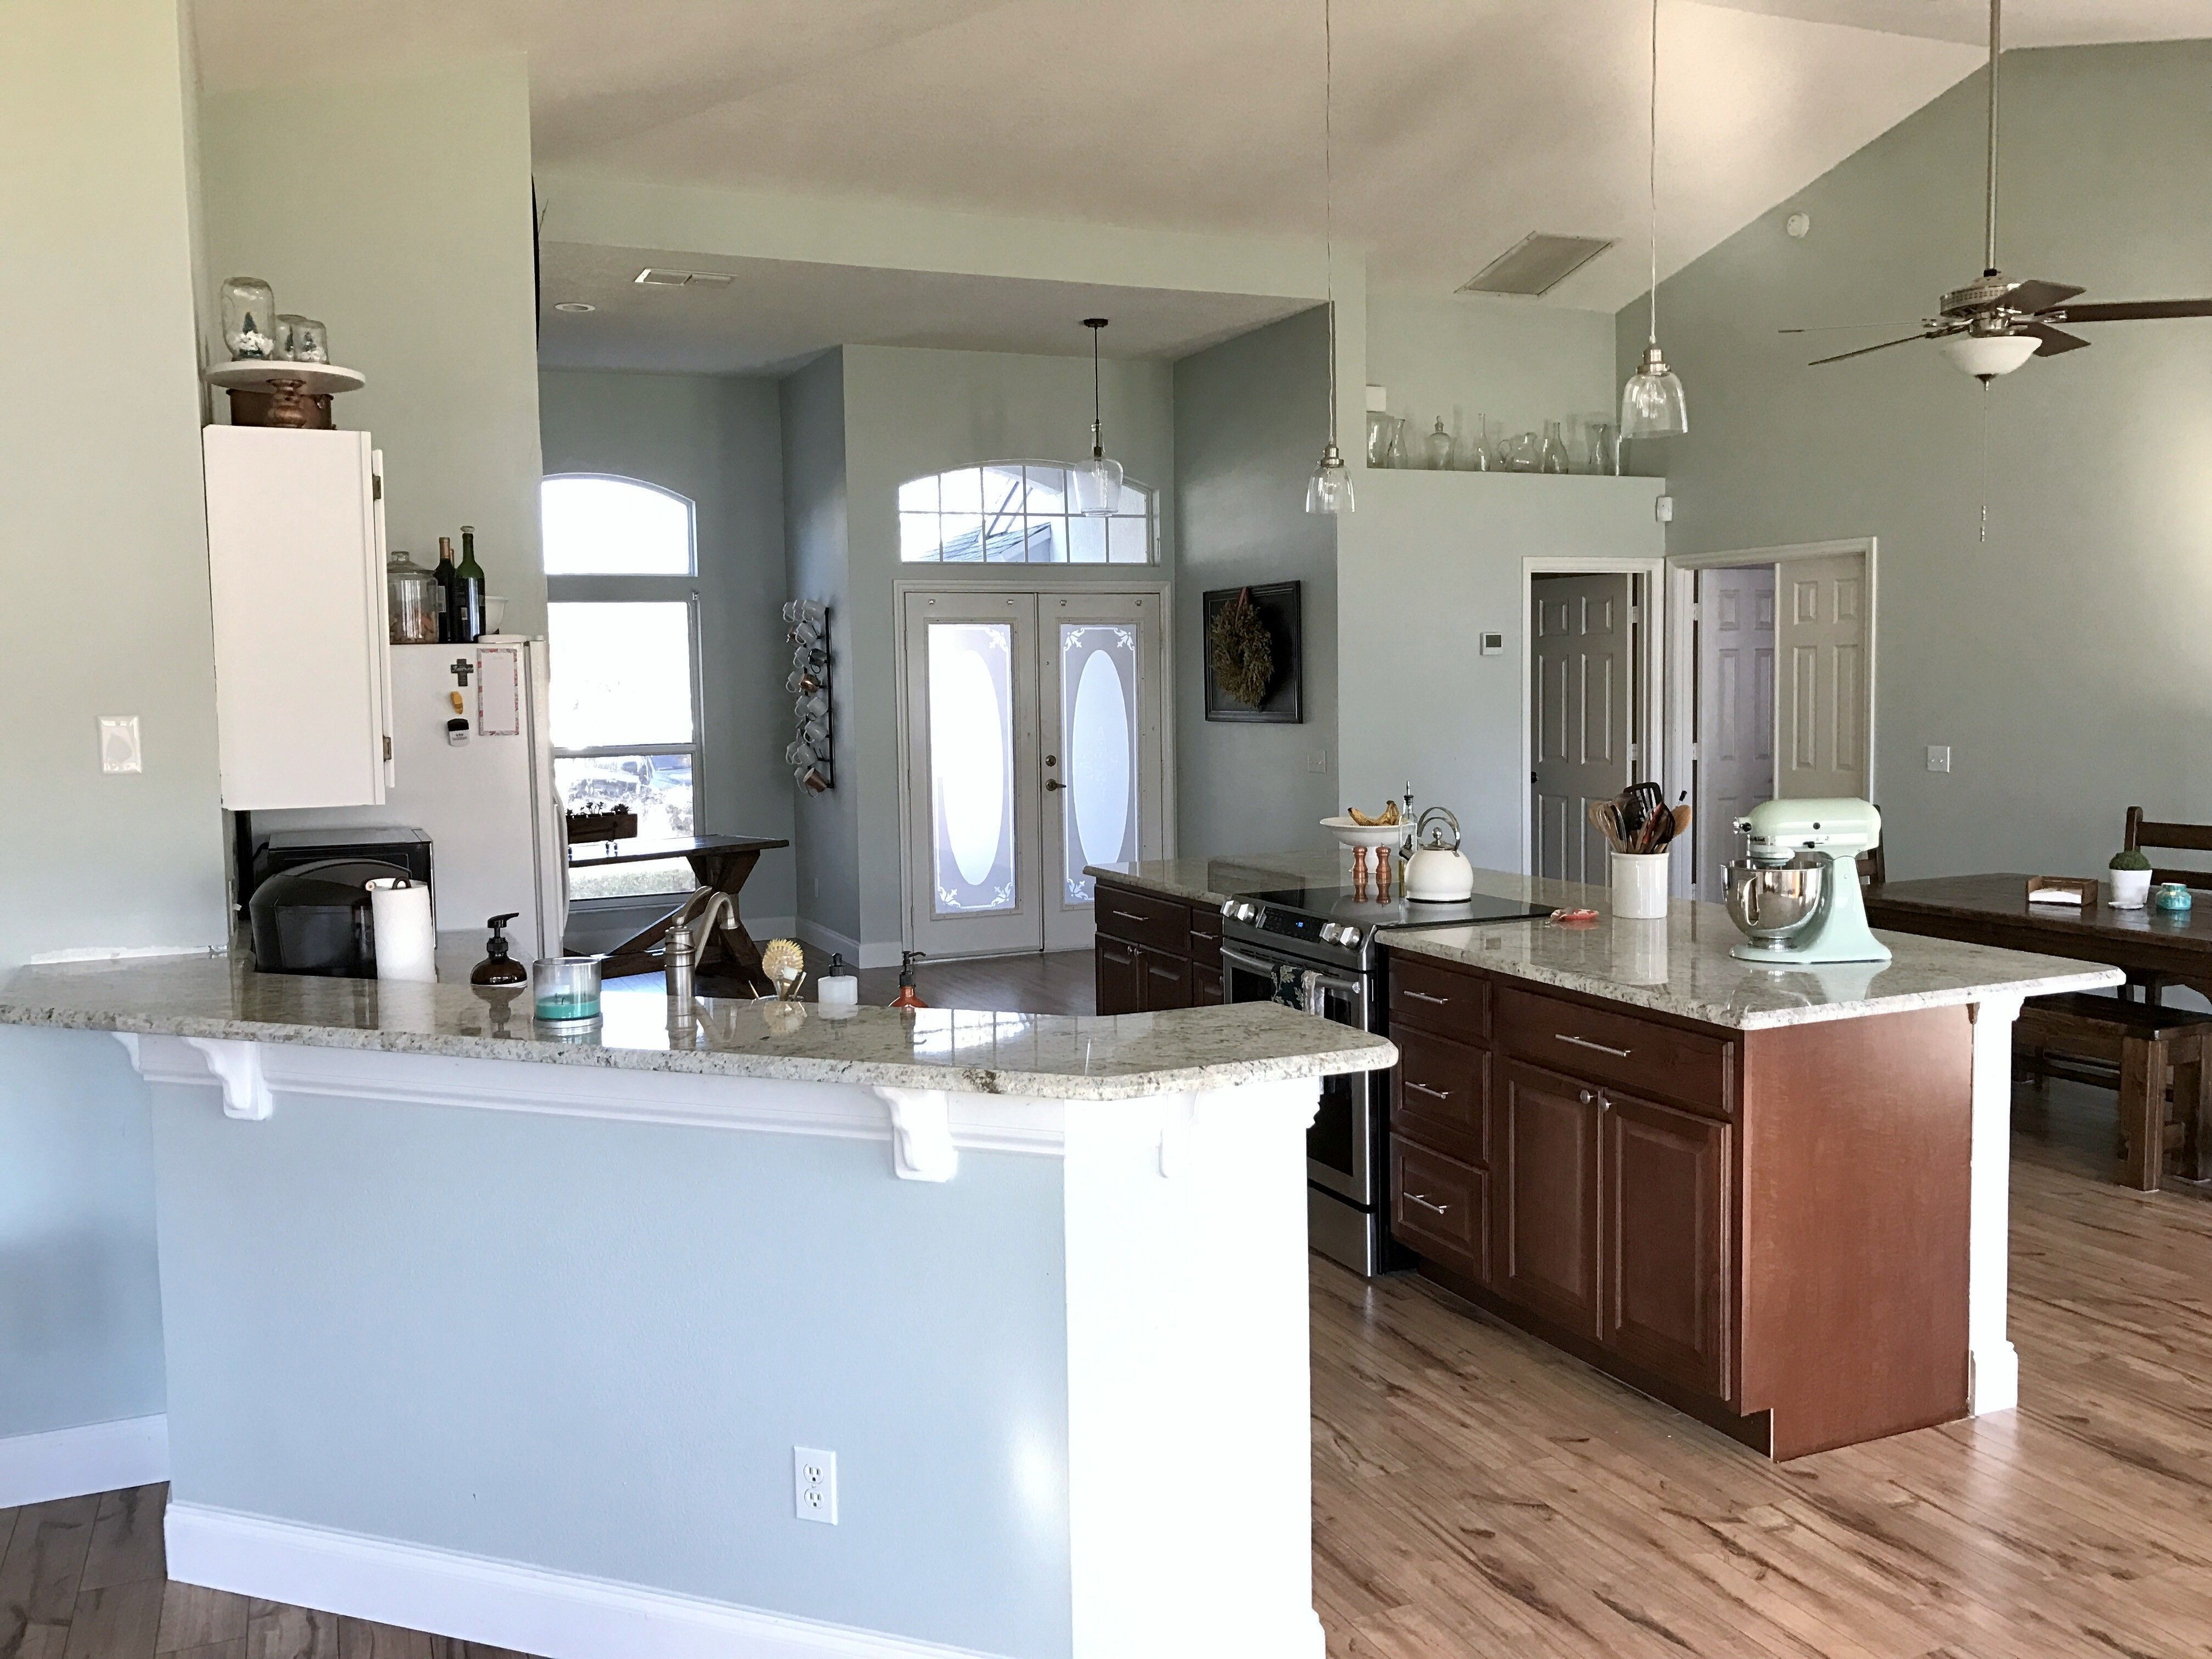 Open Concept Kitchen Living Room Design Ideas Small Remodel Ideas Cabinet L Cabinet Kitchen Remodel Layout Kitchen Remodel Small Kitchen Designs Layout